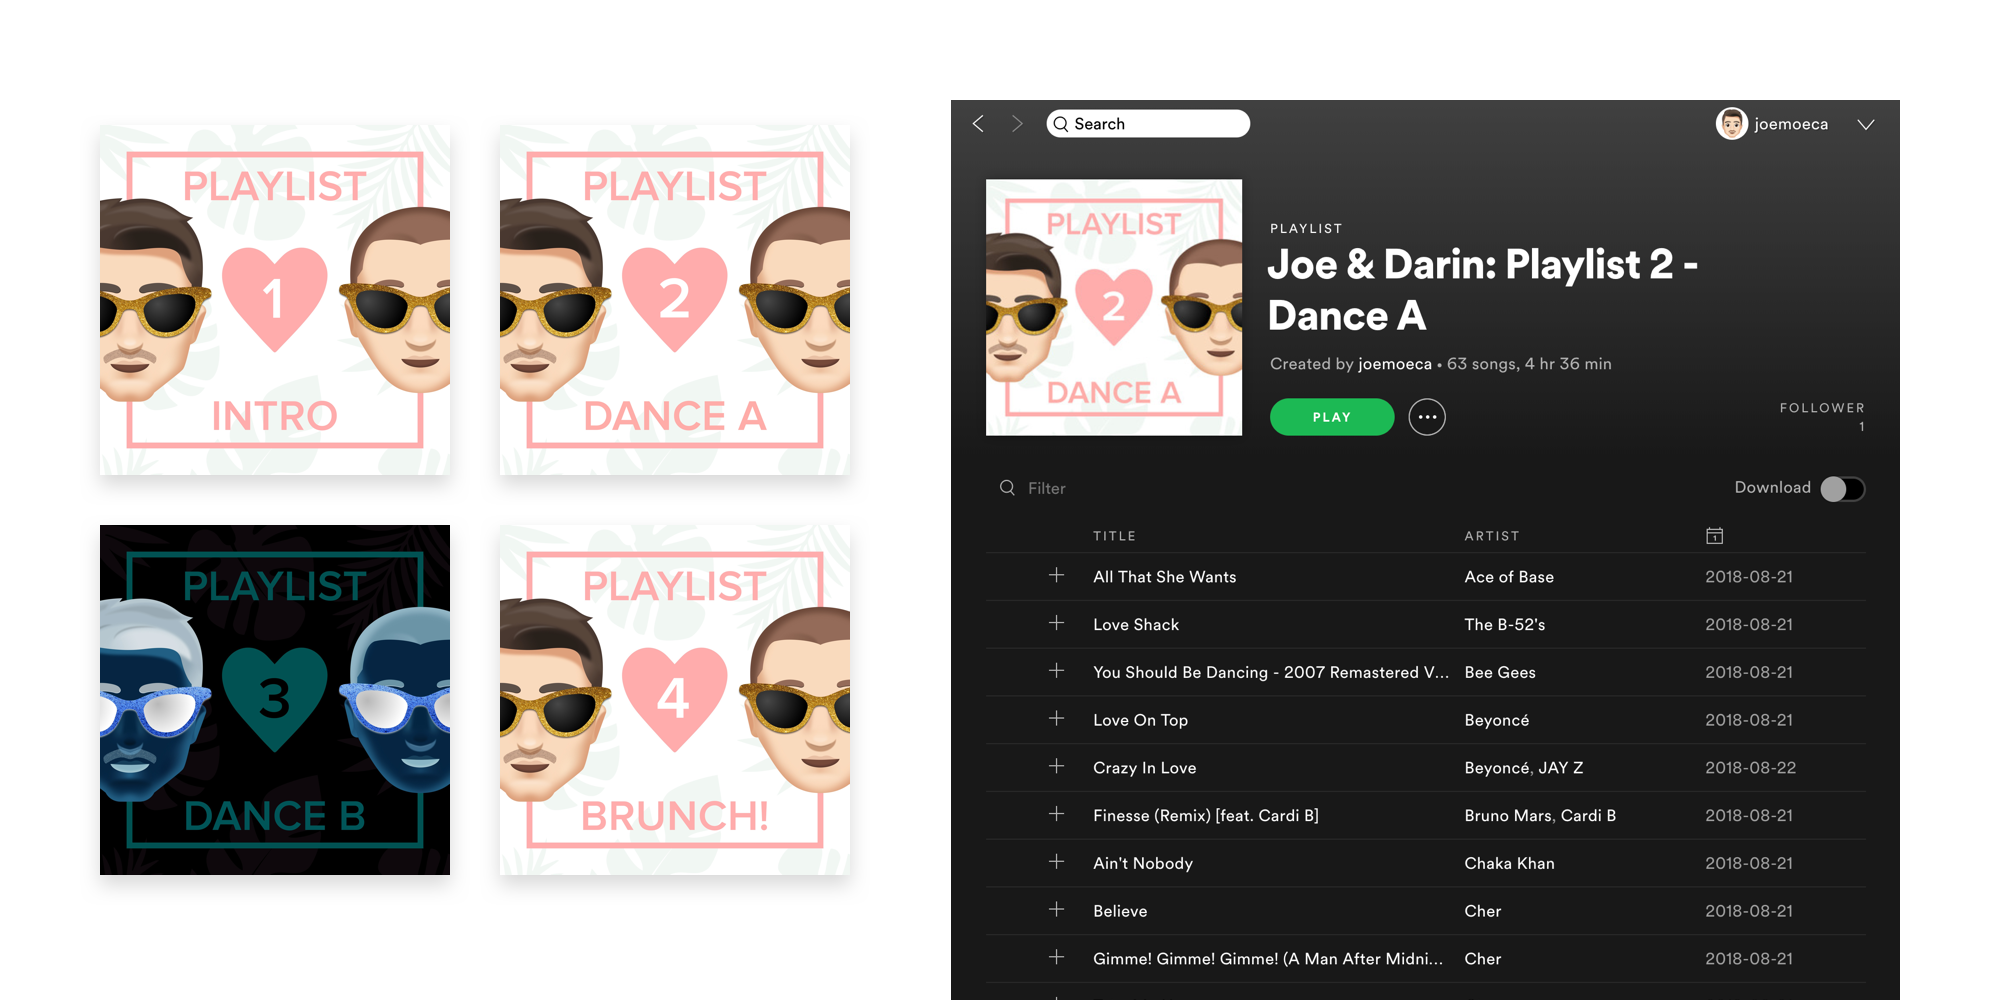 Custom playlist cover art was attached to each playlist in Spotify.